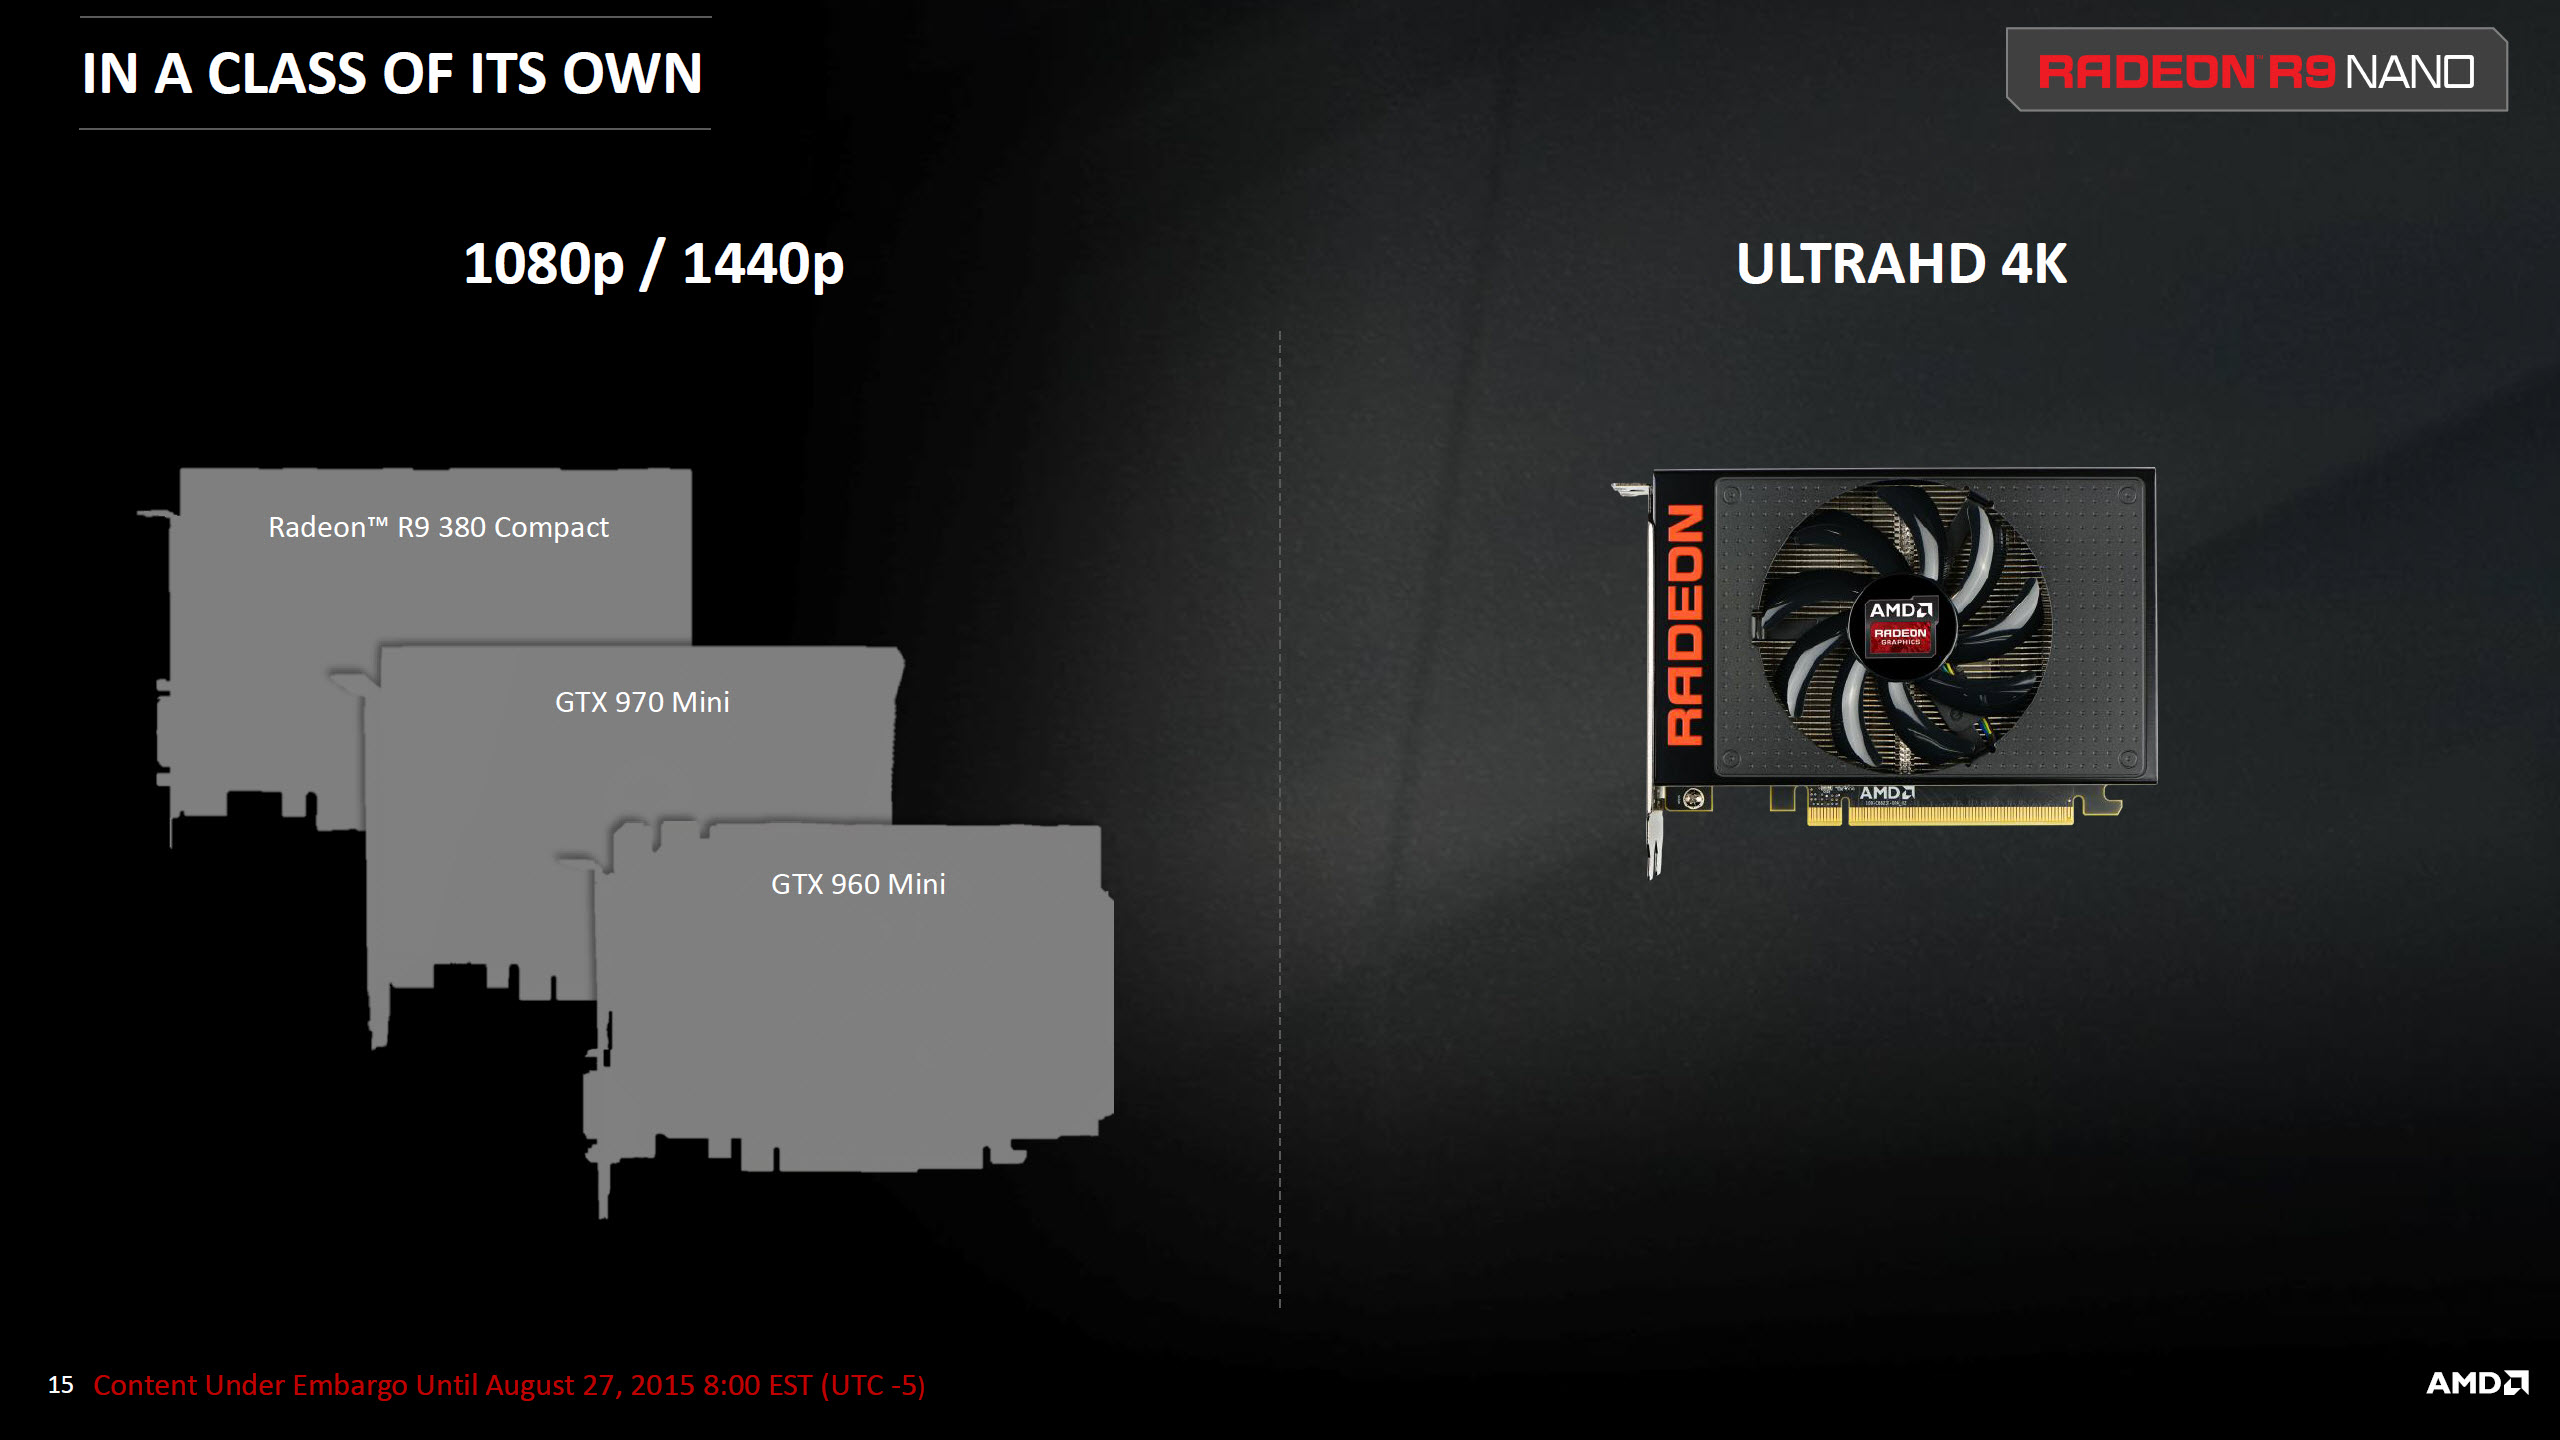 AMD Radeon R9 Nano Can Be CrossFired With Radeon R9 Fury X - Fiji